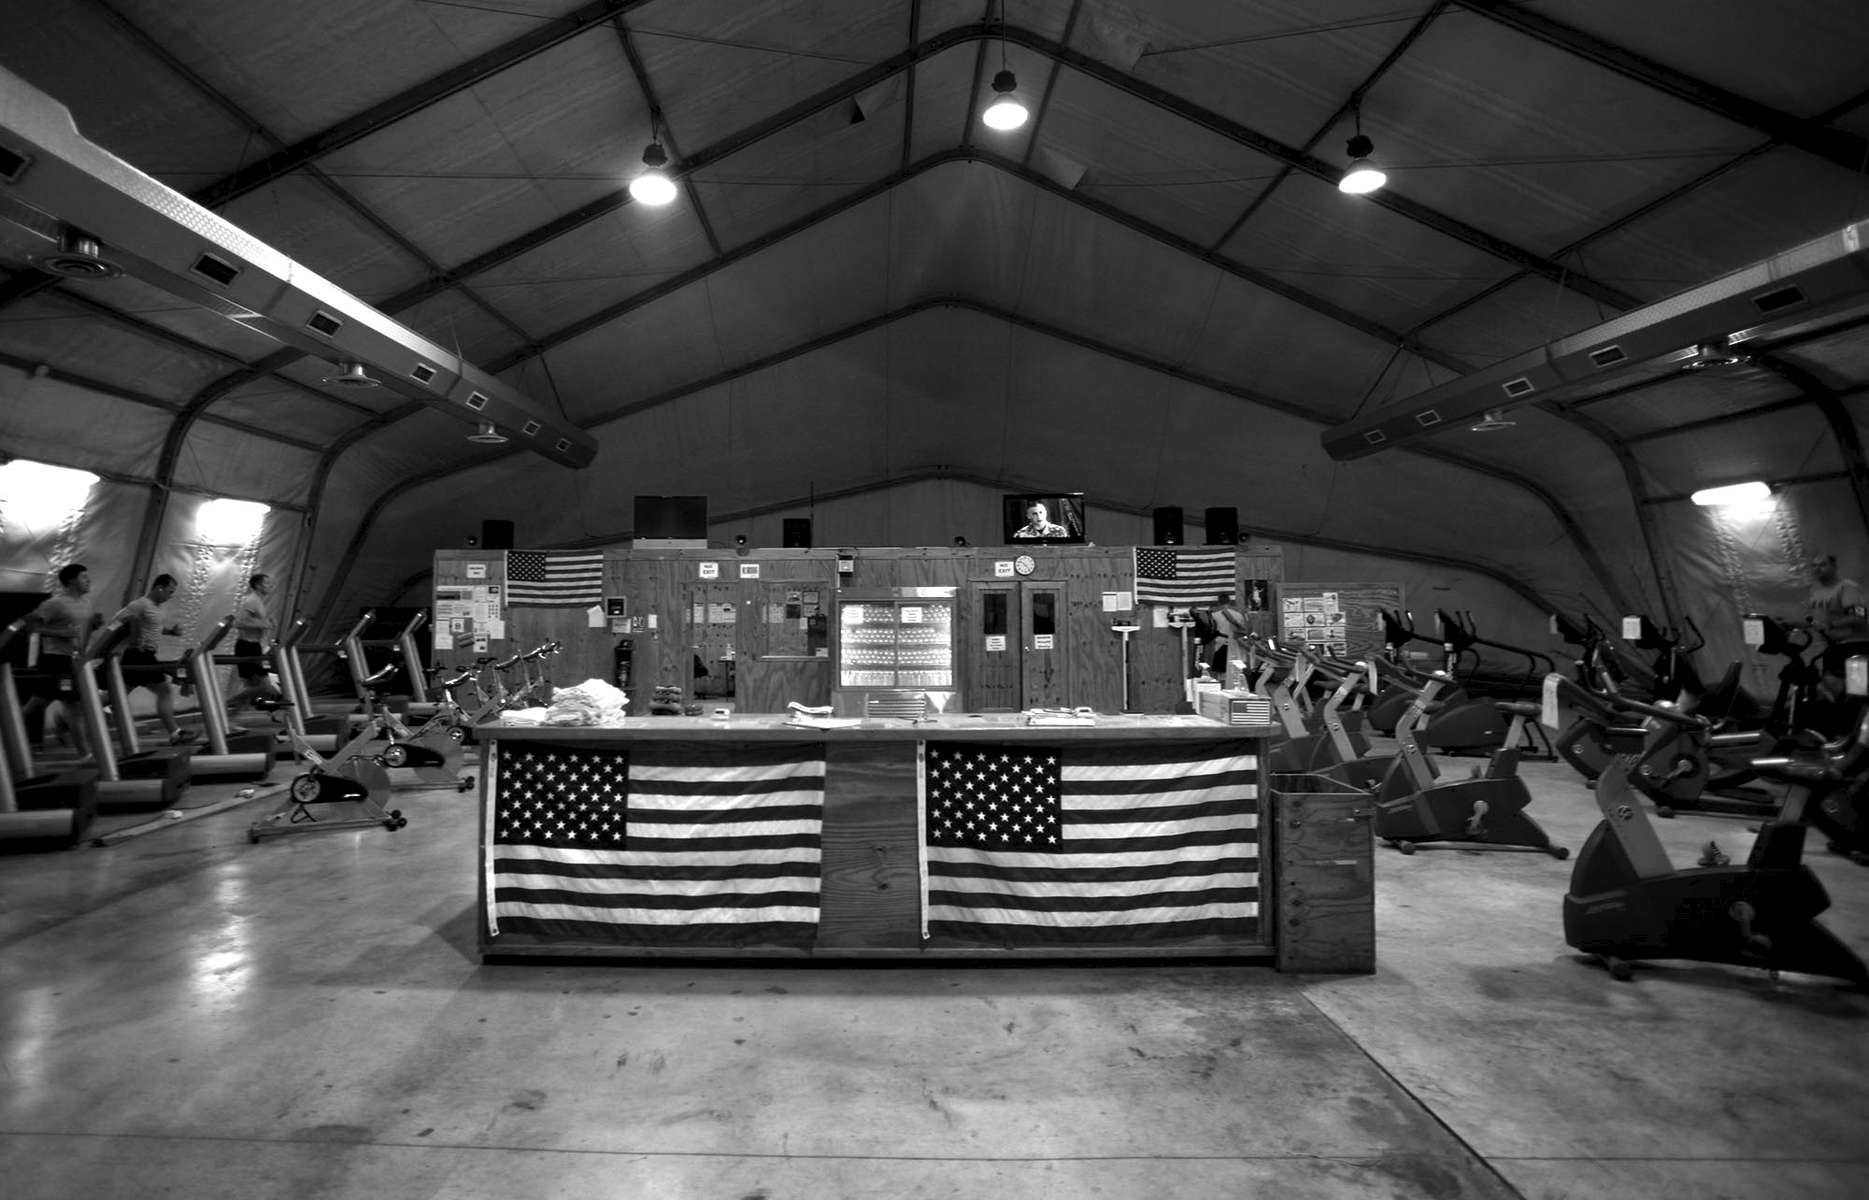 As fewer soliders are needed in Iraq, places like this workout facility in Camp Adder become more deserted.